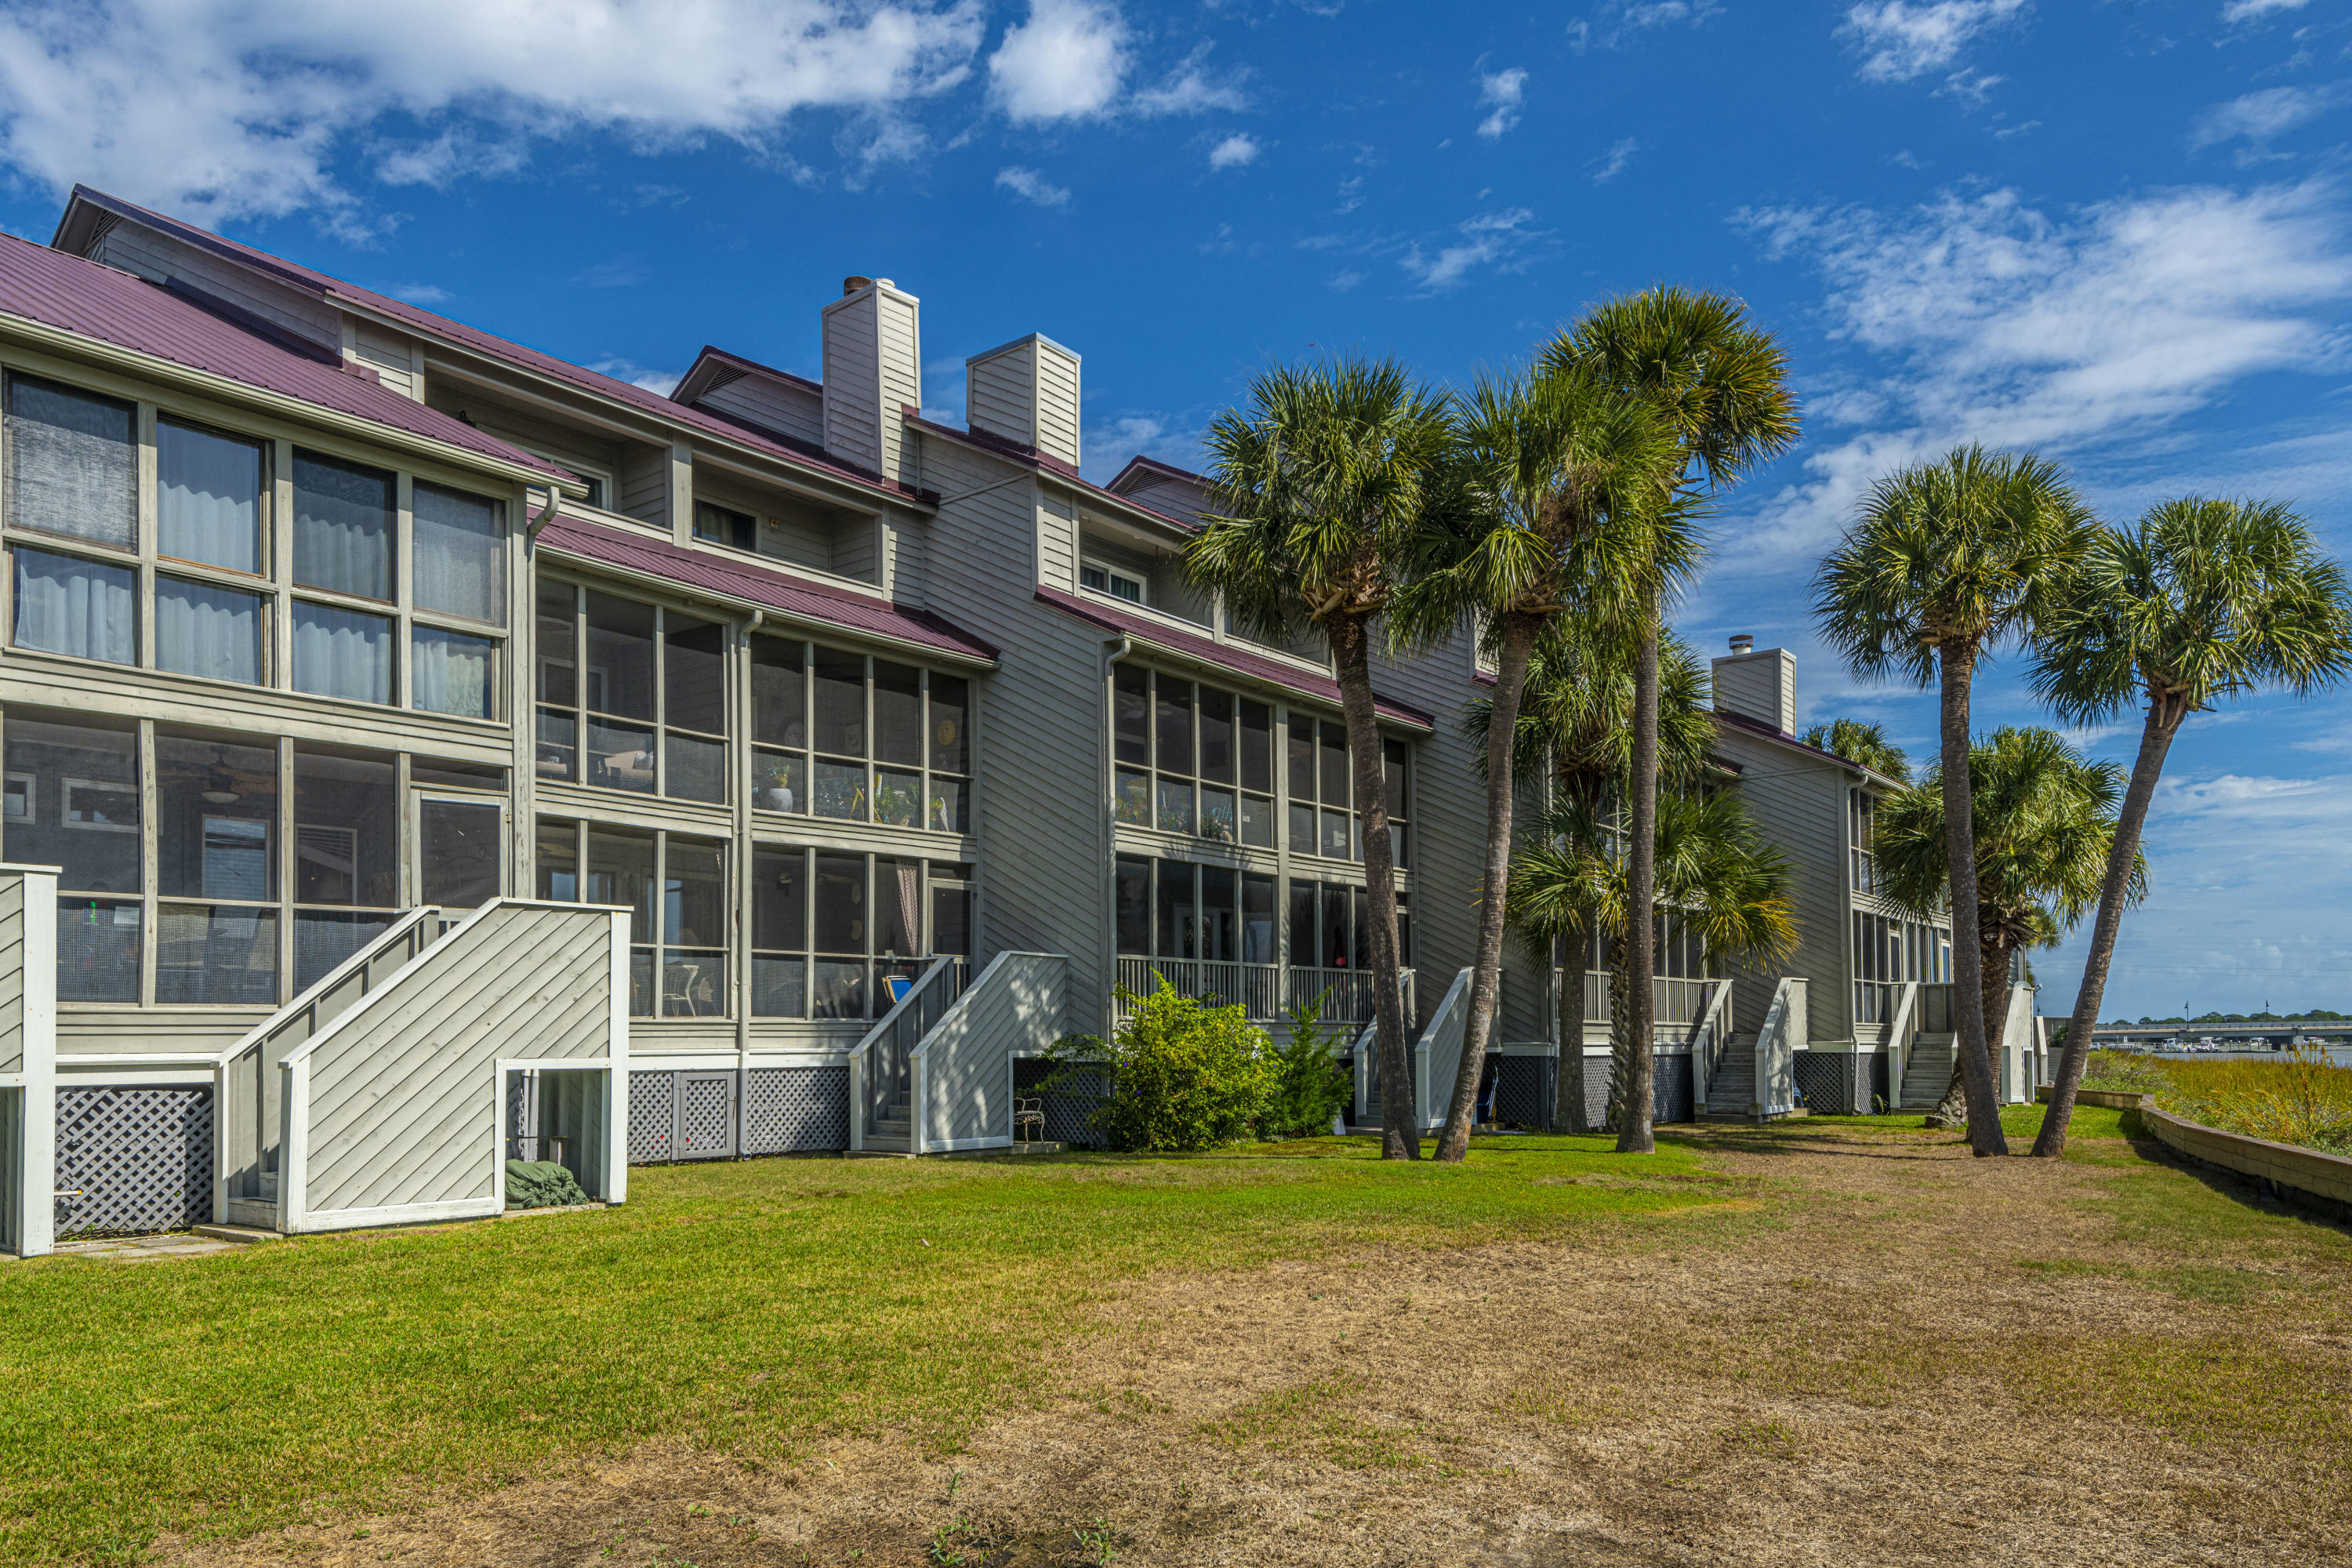 Mariners Cay Homes For Sale - 60 Mariners Cay, Folly Beach, SC - 27